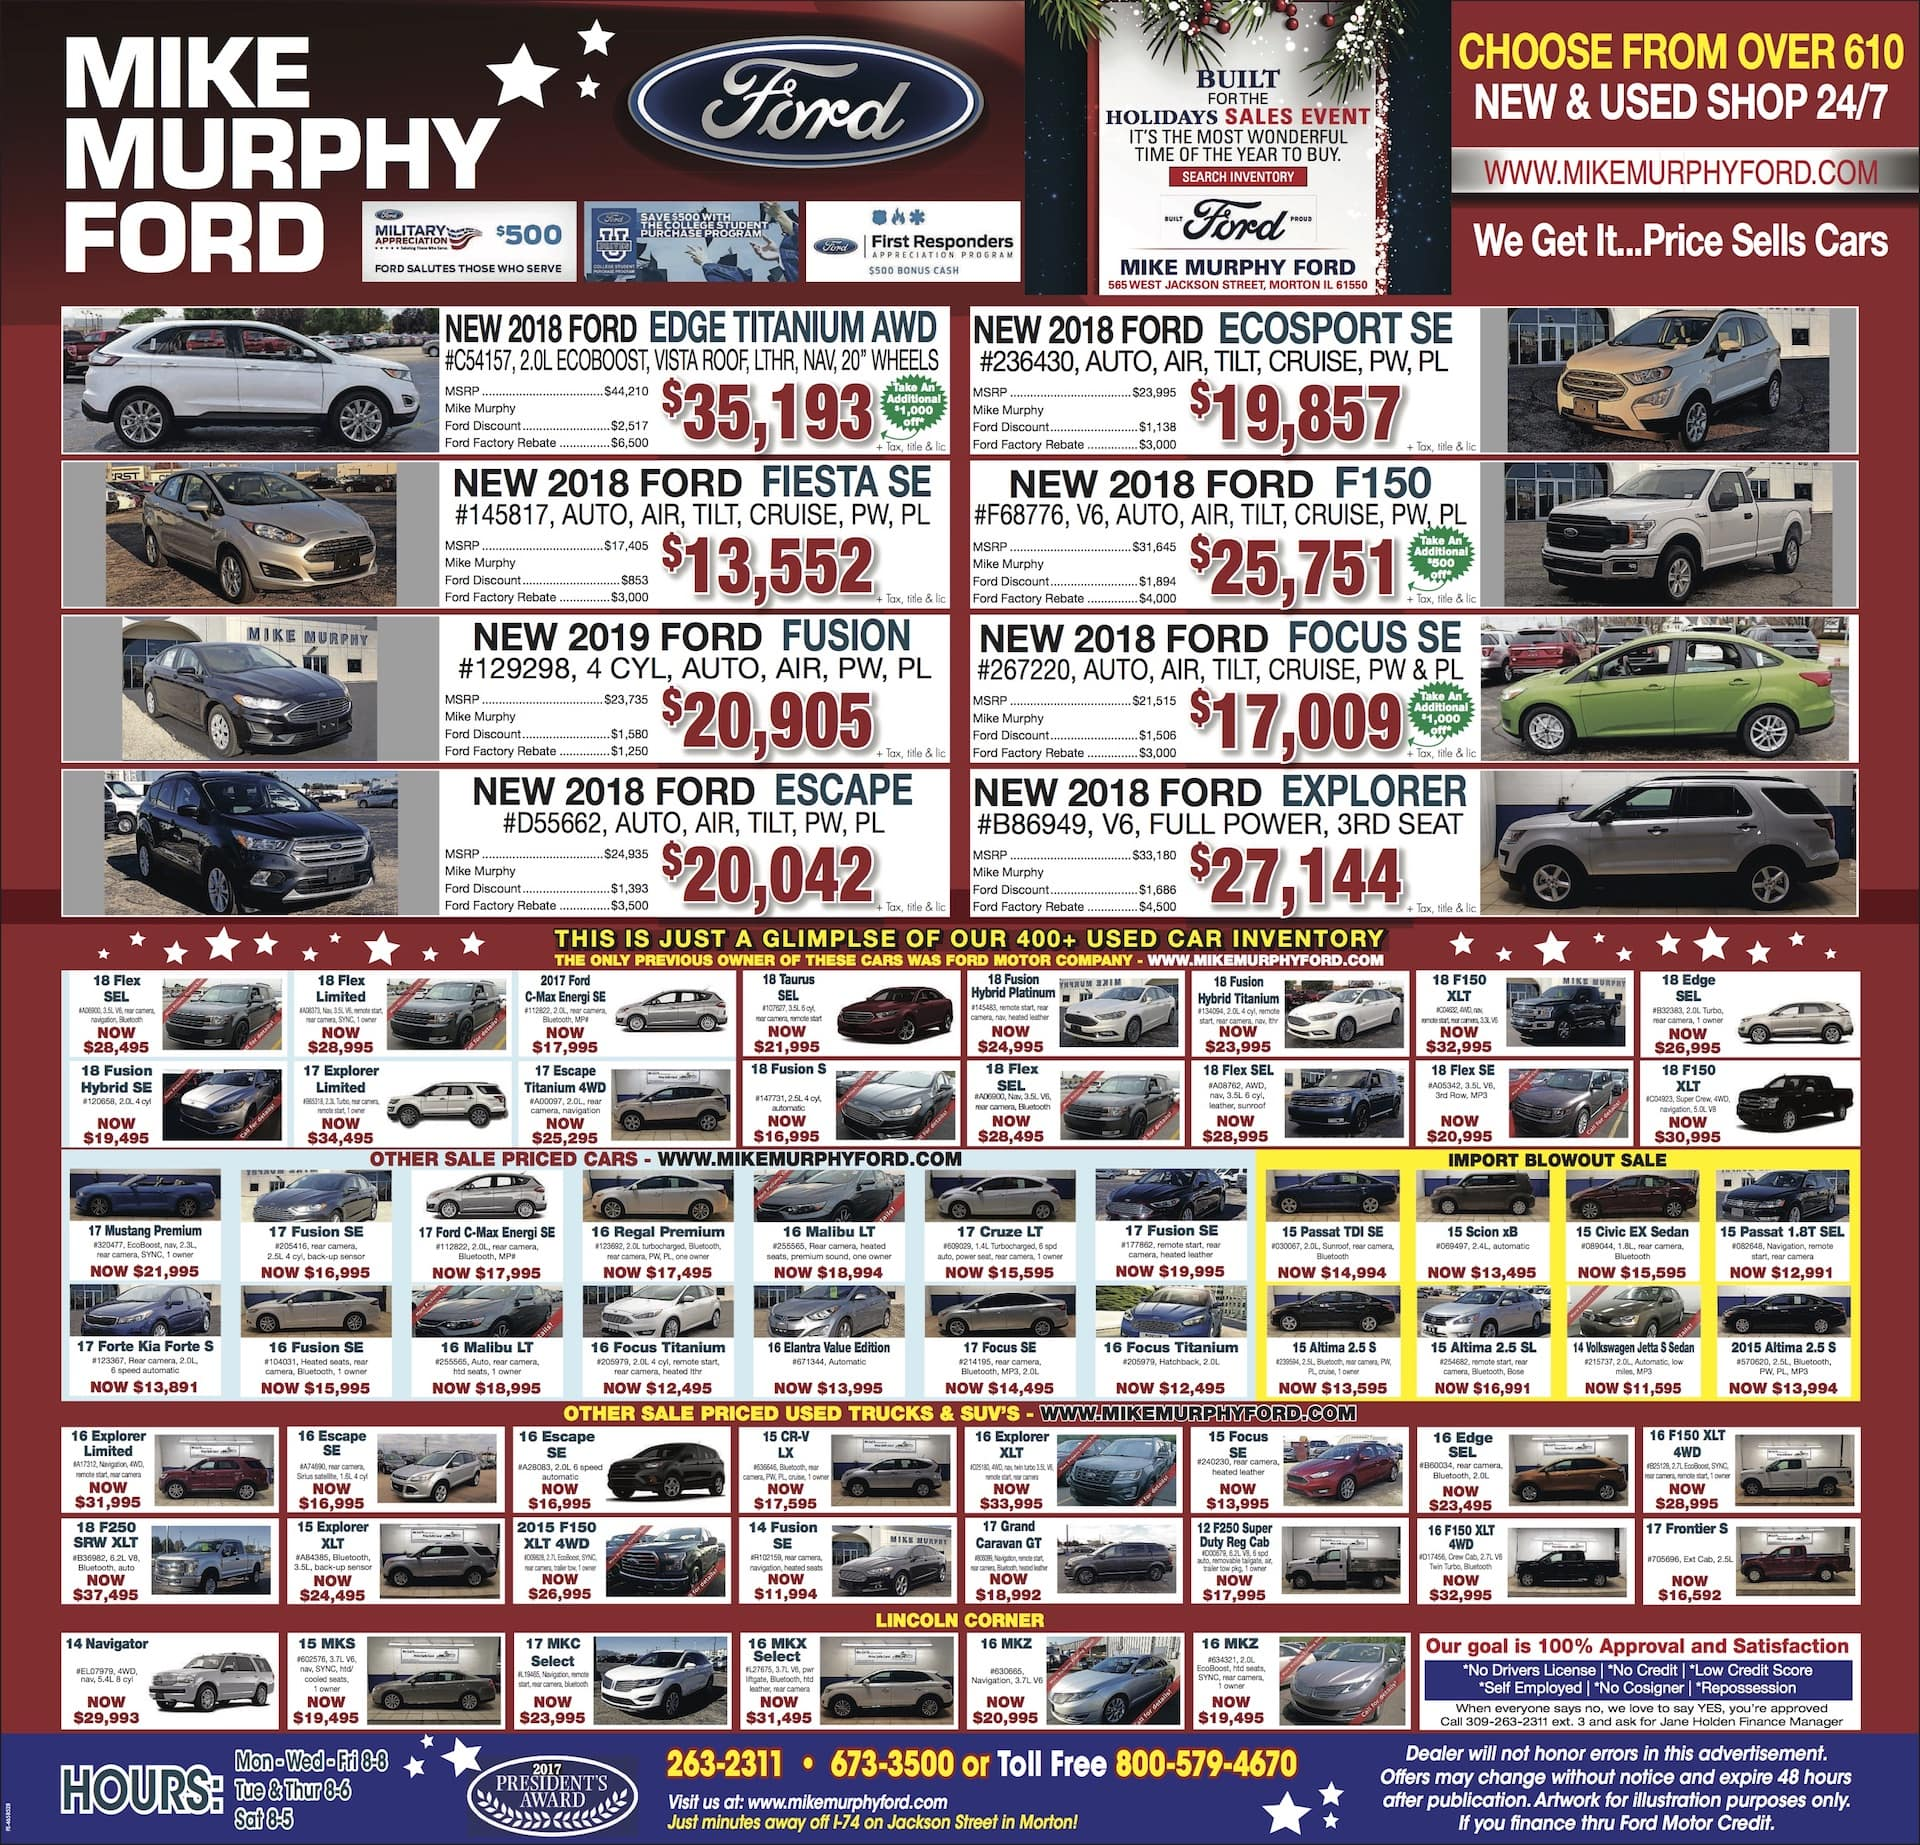 Mike Murphy Ford.11.16